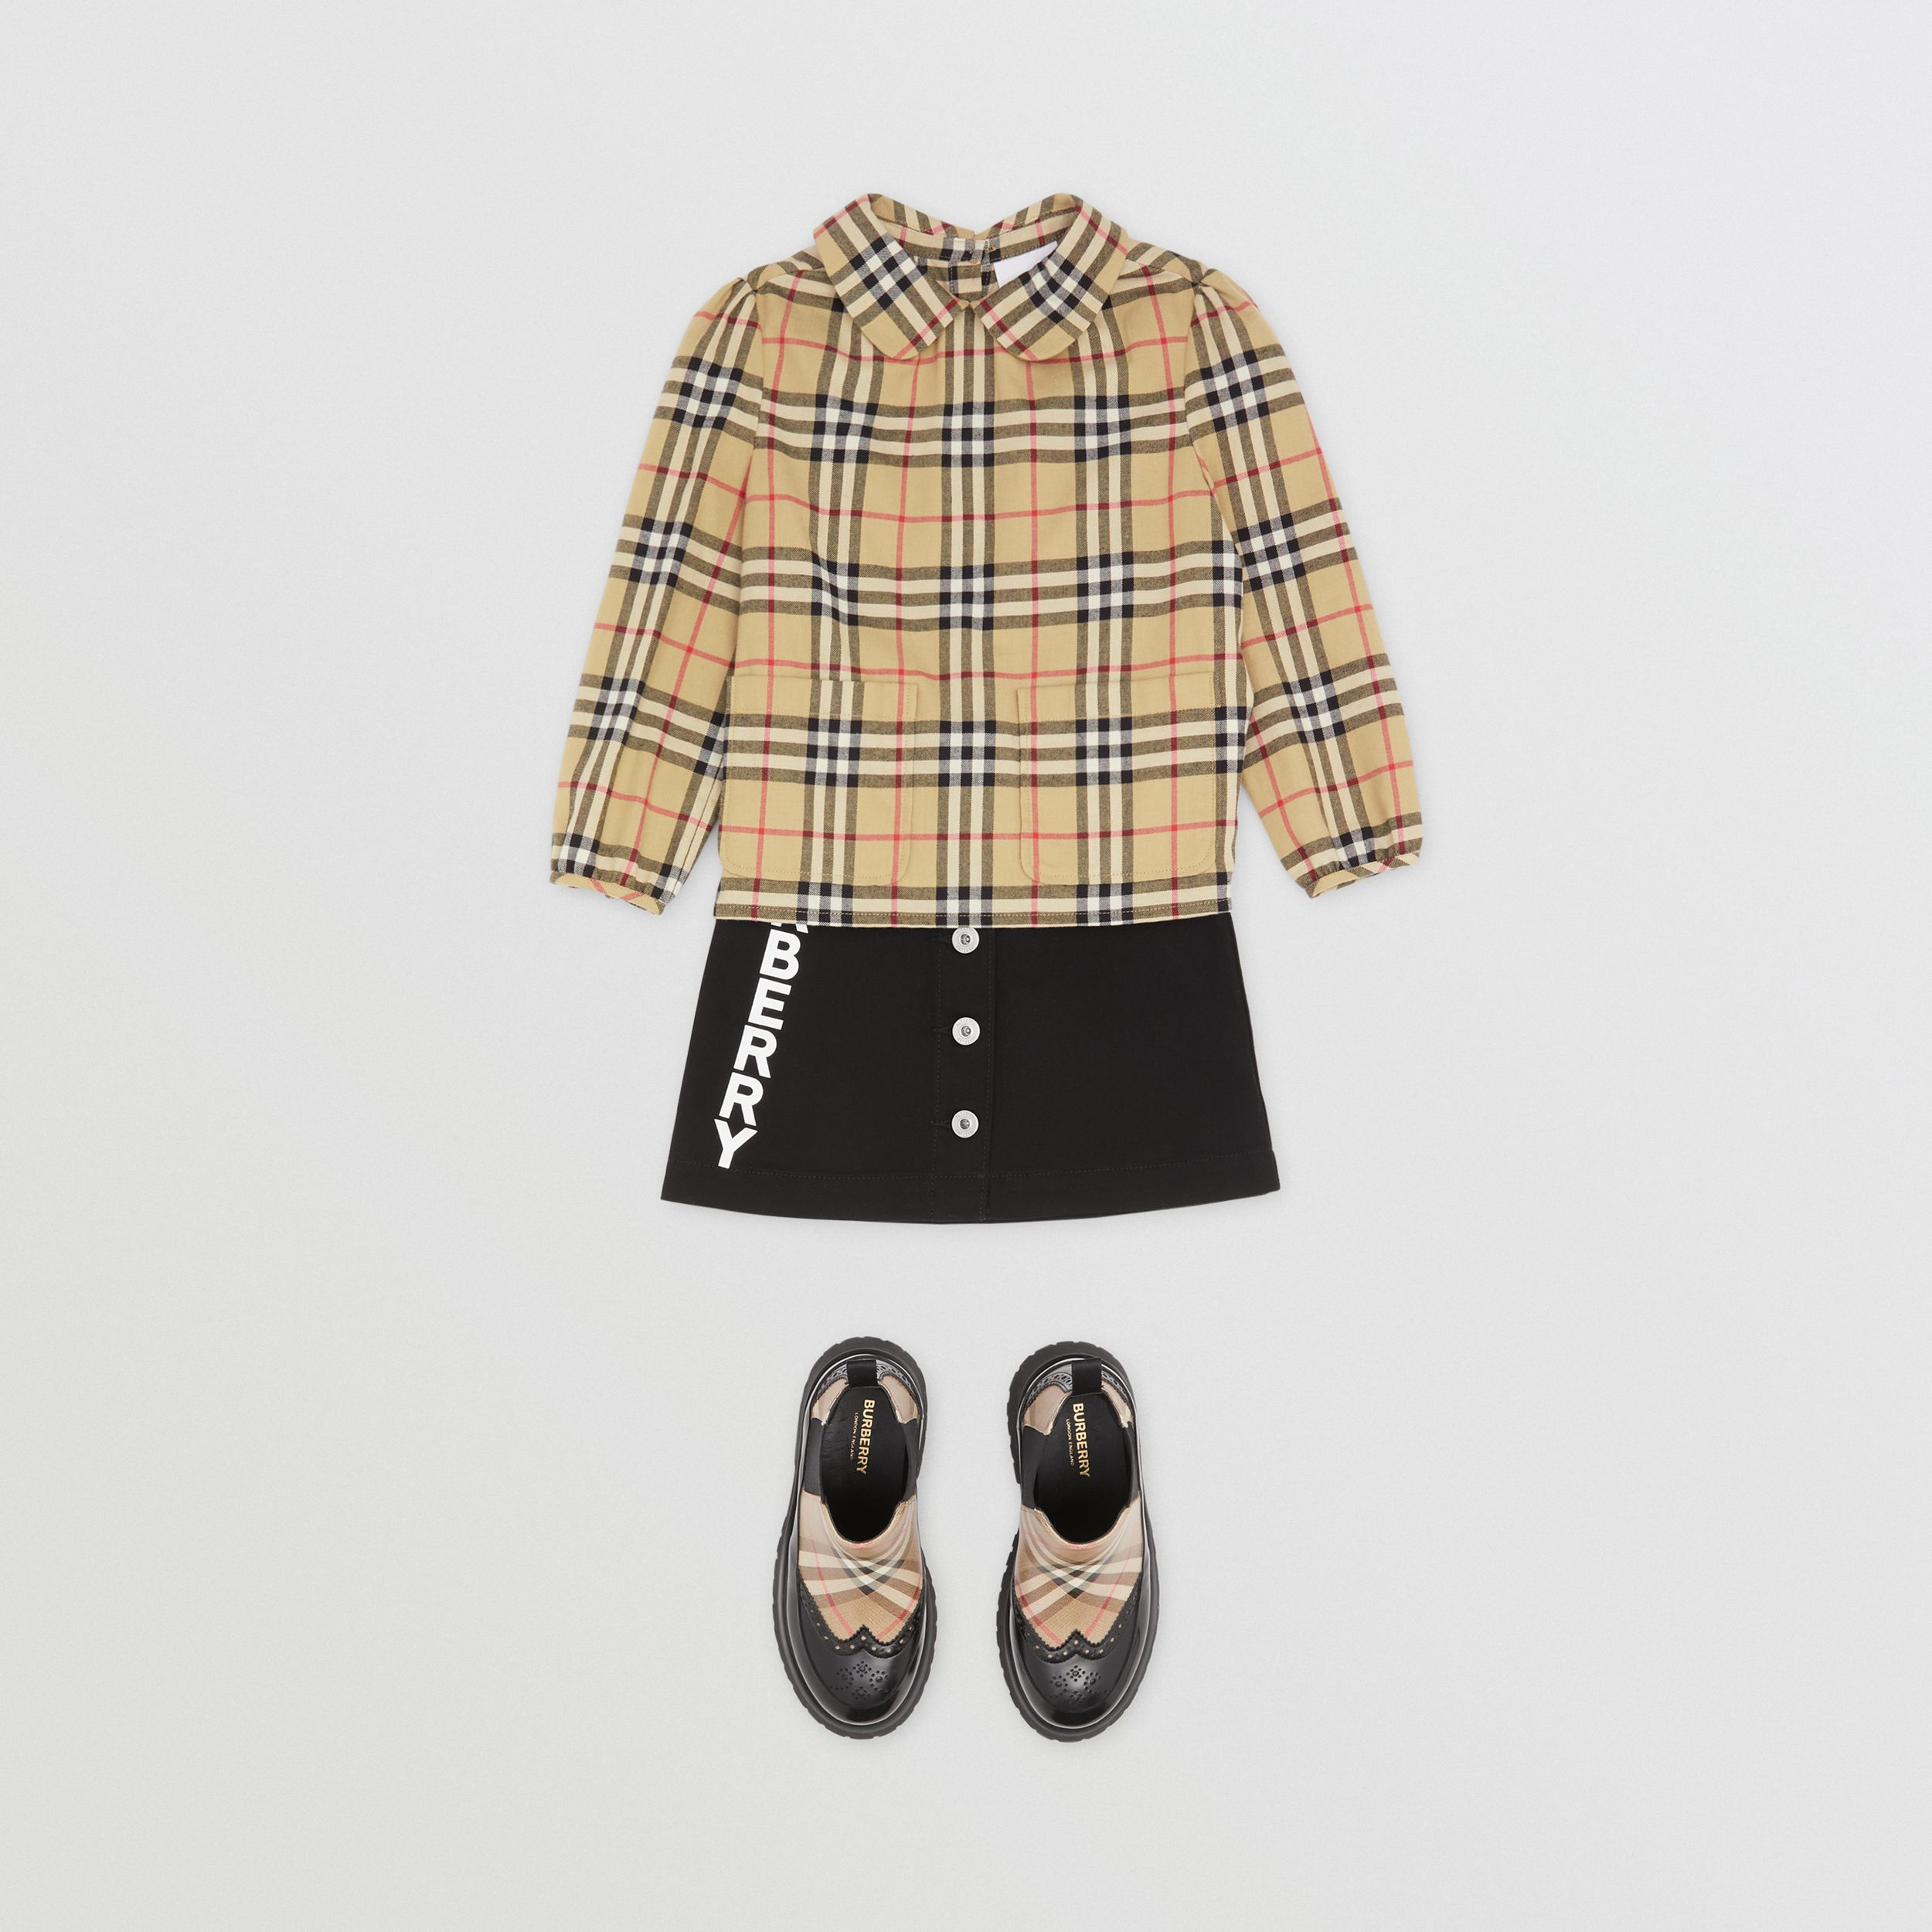 Peter Pan Collar Vintage Check Cotton Blouse | Burberry Australia - 3